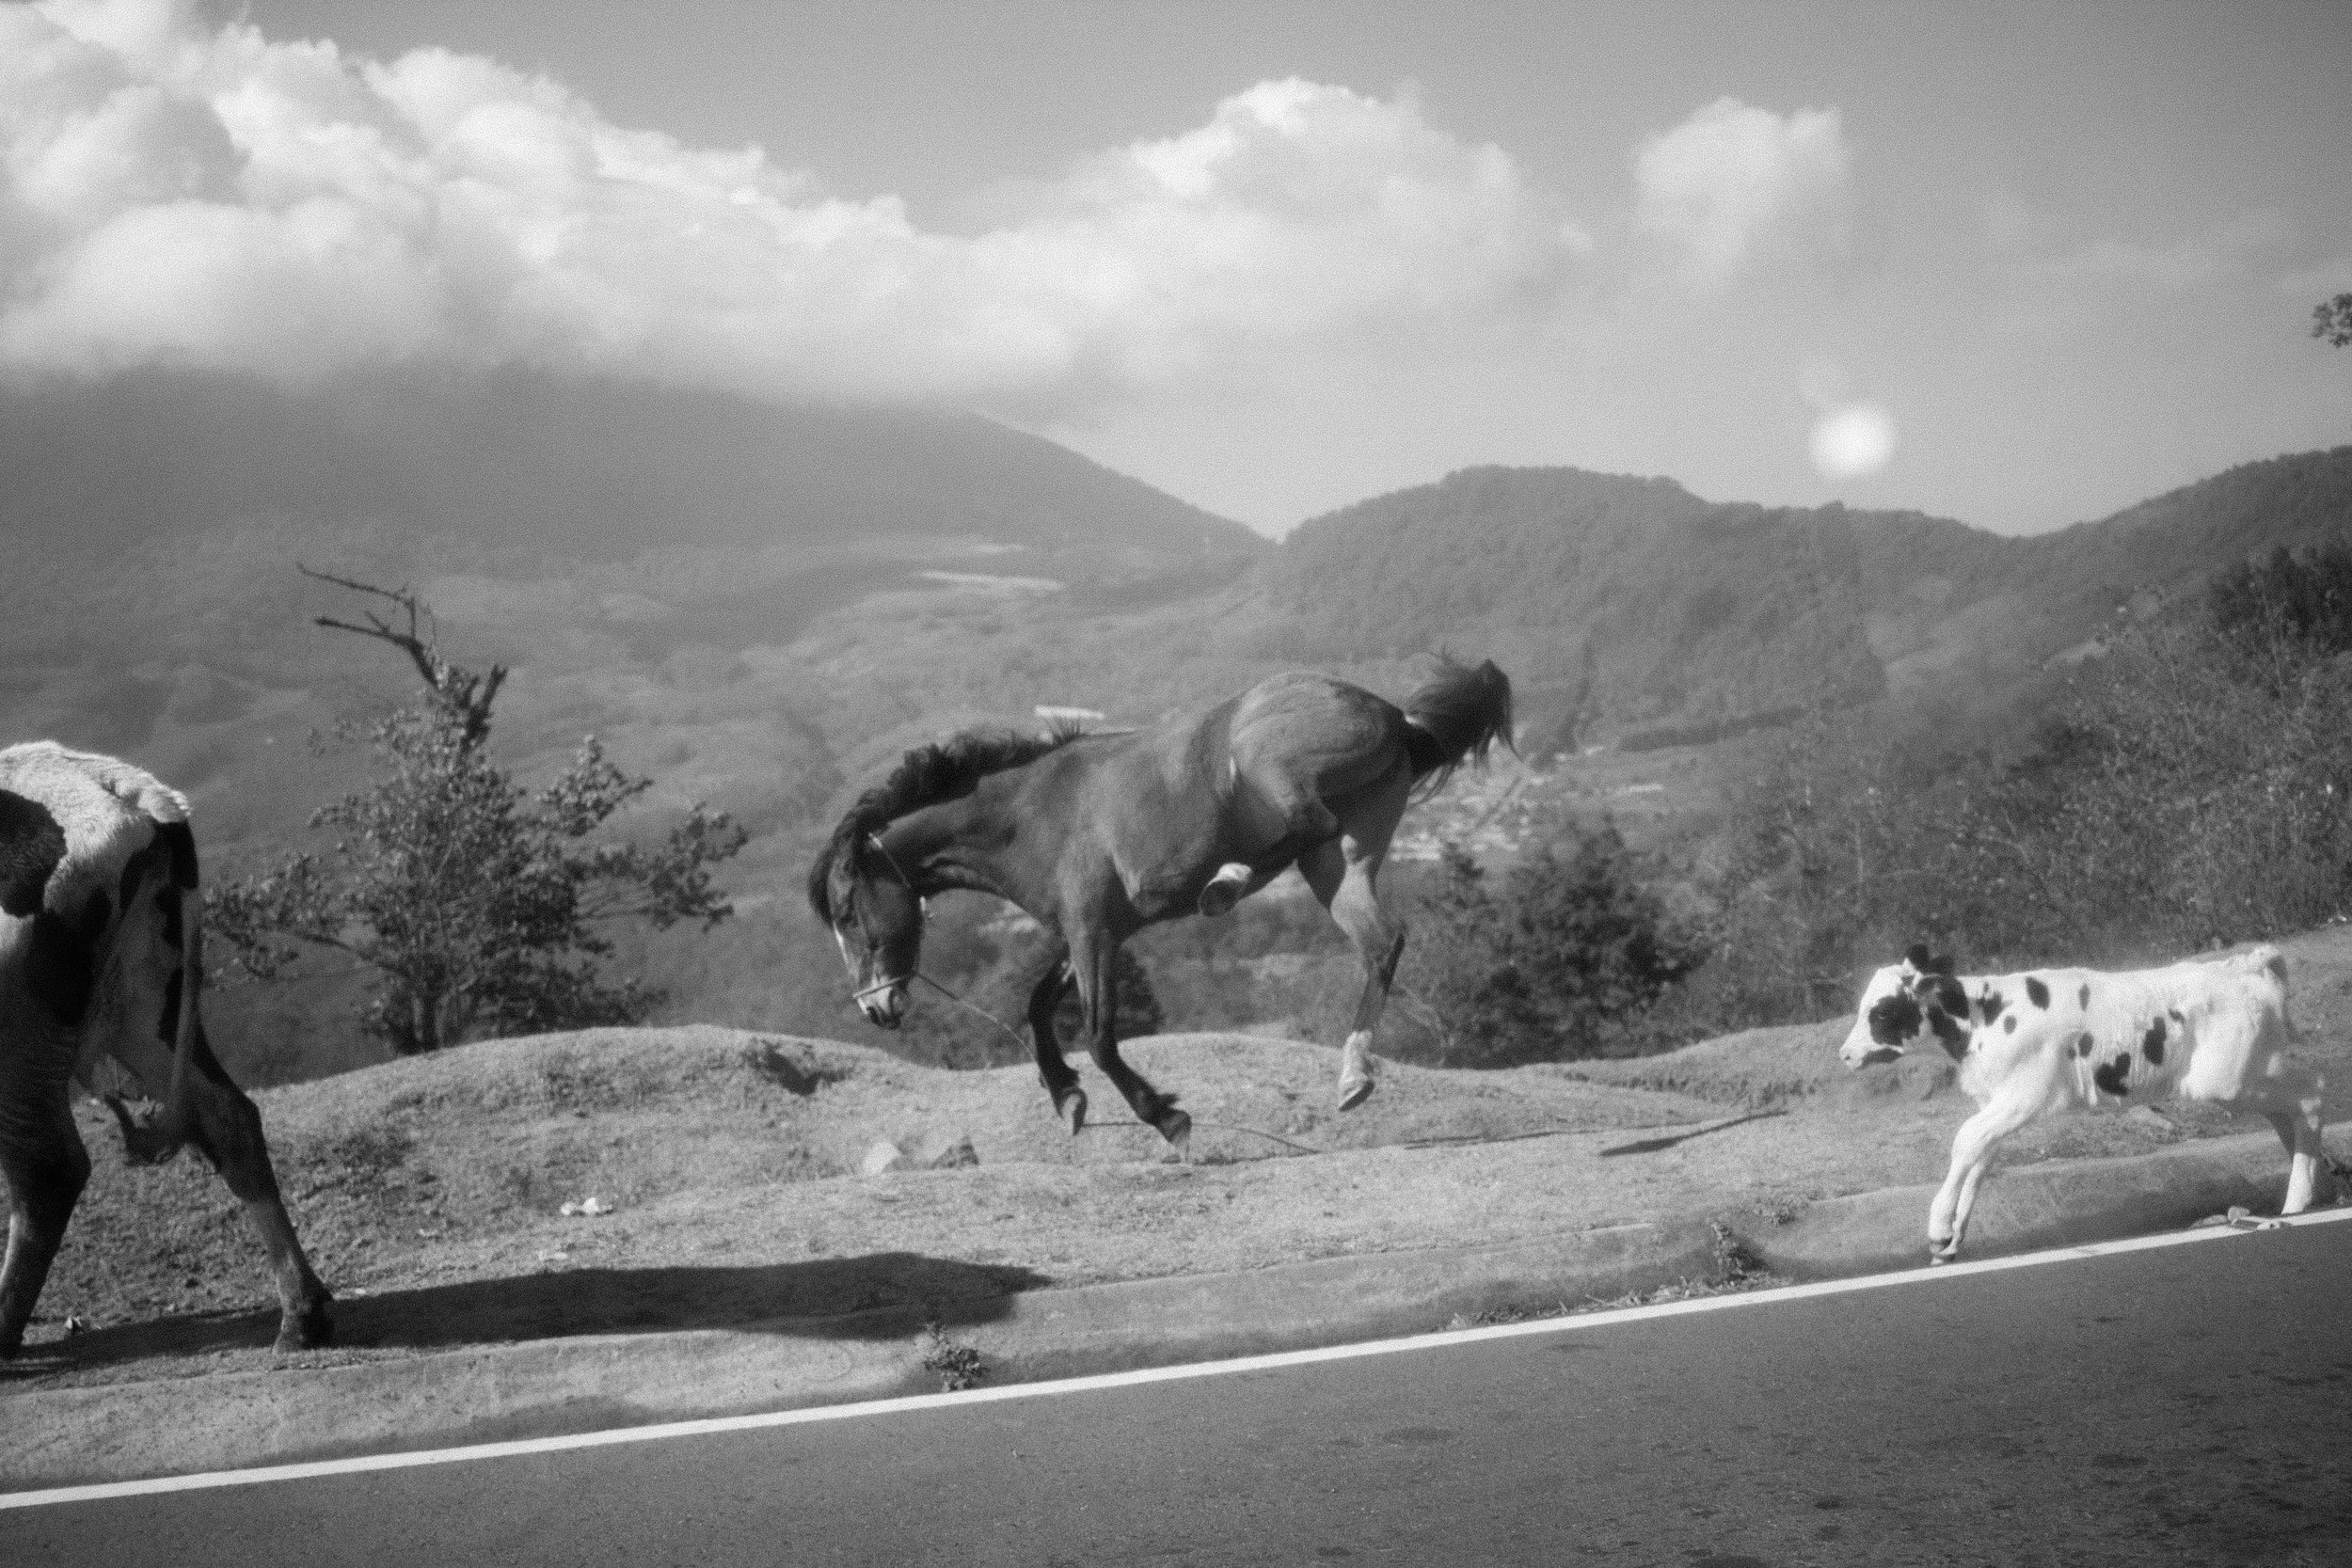 An unbroken horse kicks his hind legs into the air alongside a mountain road to the village of Campmento, near San Andrés Itzapa, Guatemala. Horses and donkeys are an essential tool tot he highland way of life, from transportation, to transporting crops and firewood often long distances on rough terrain. © Cory Zimmerman, Assade NGO